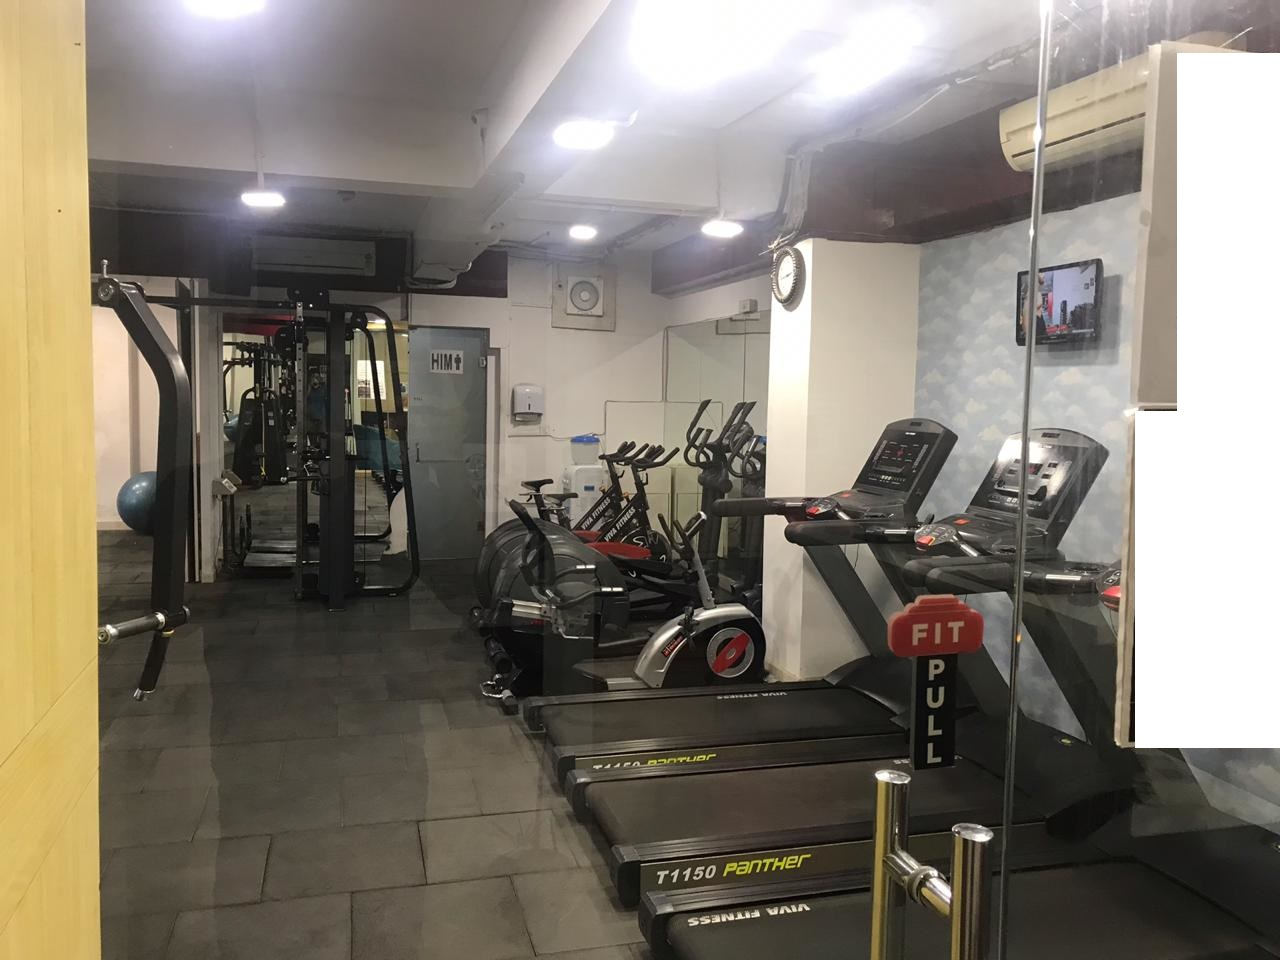 Running Gym Business for Sale in Dlf Phase 4 in Gurgaon